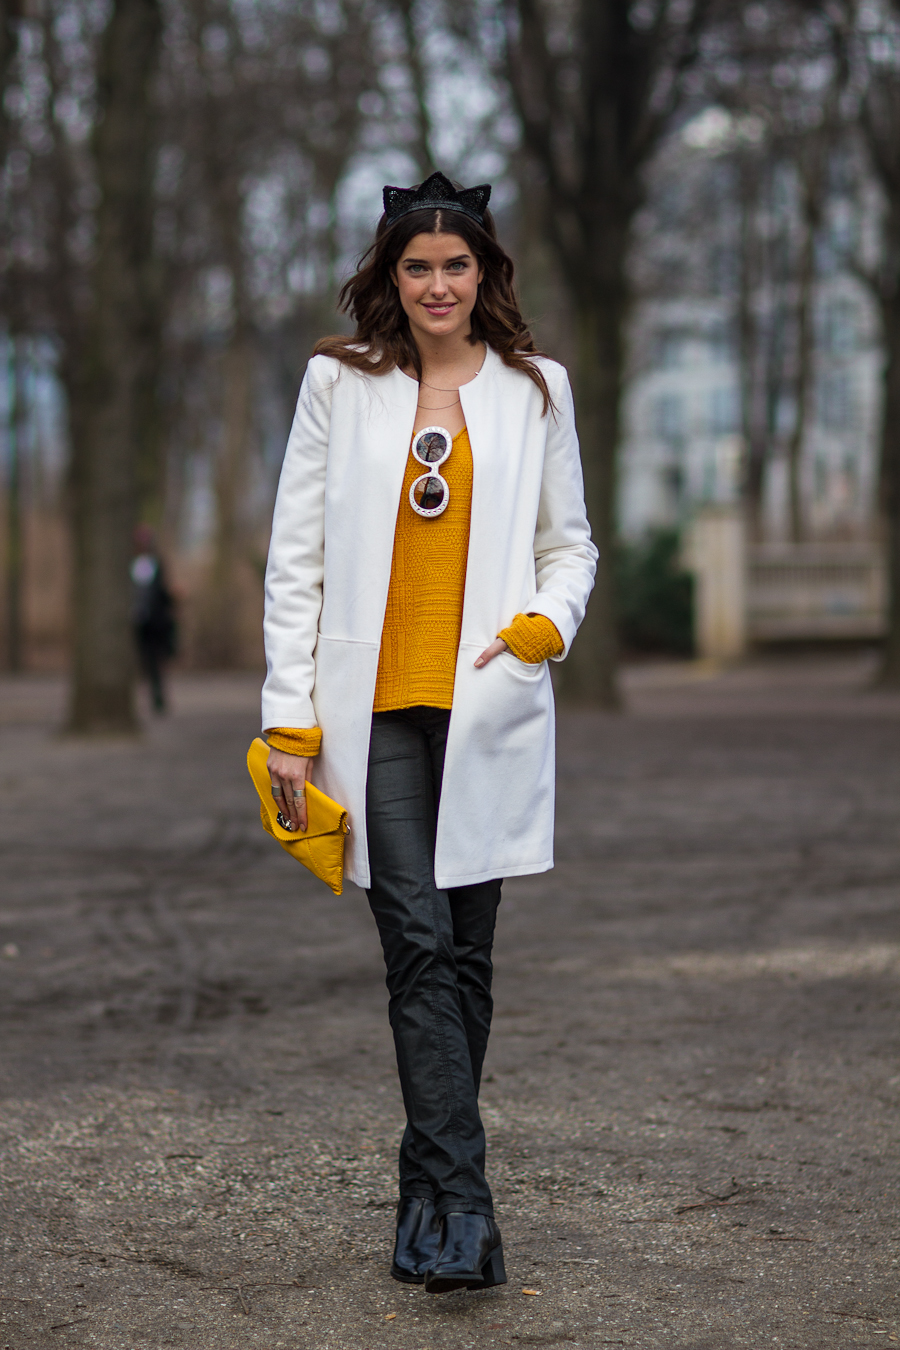 street-style-fashion-blog-innsbruck-berlin-fashion-week-marie-nasemann